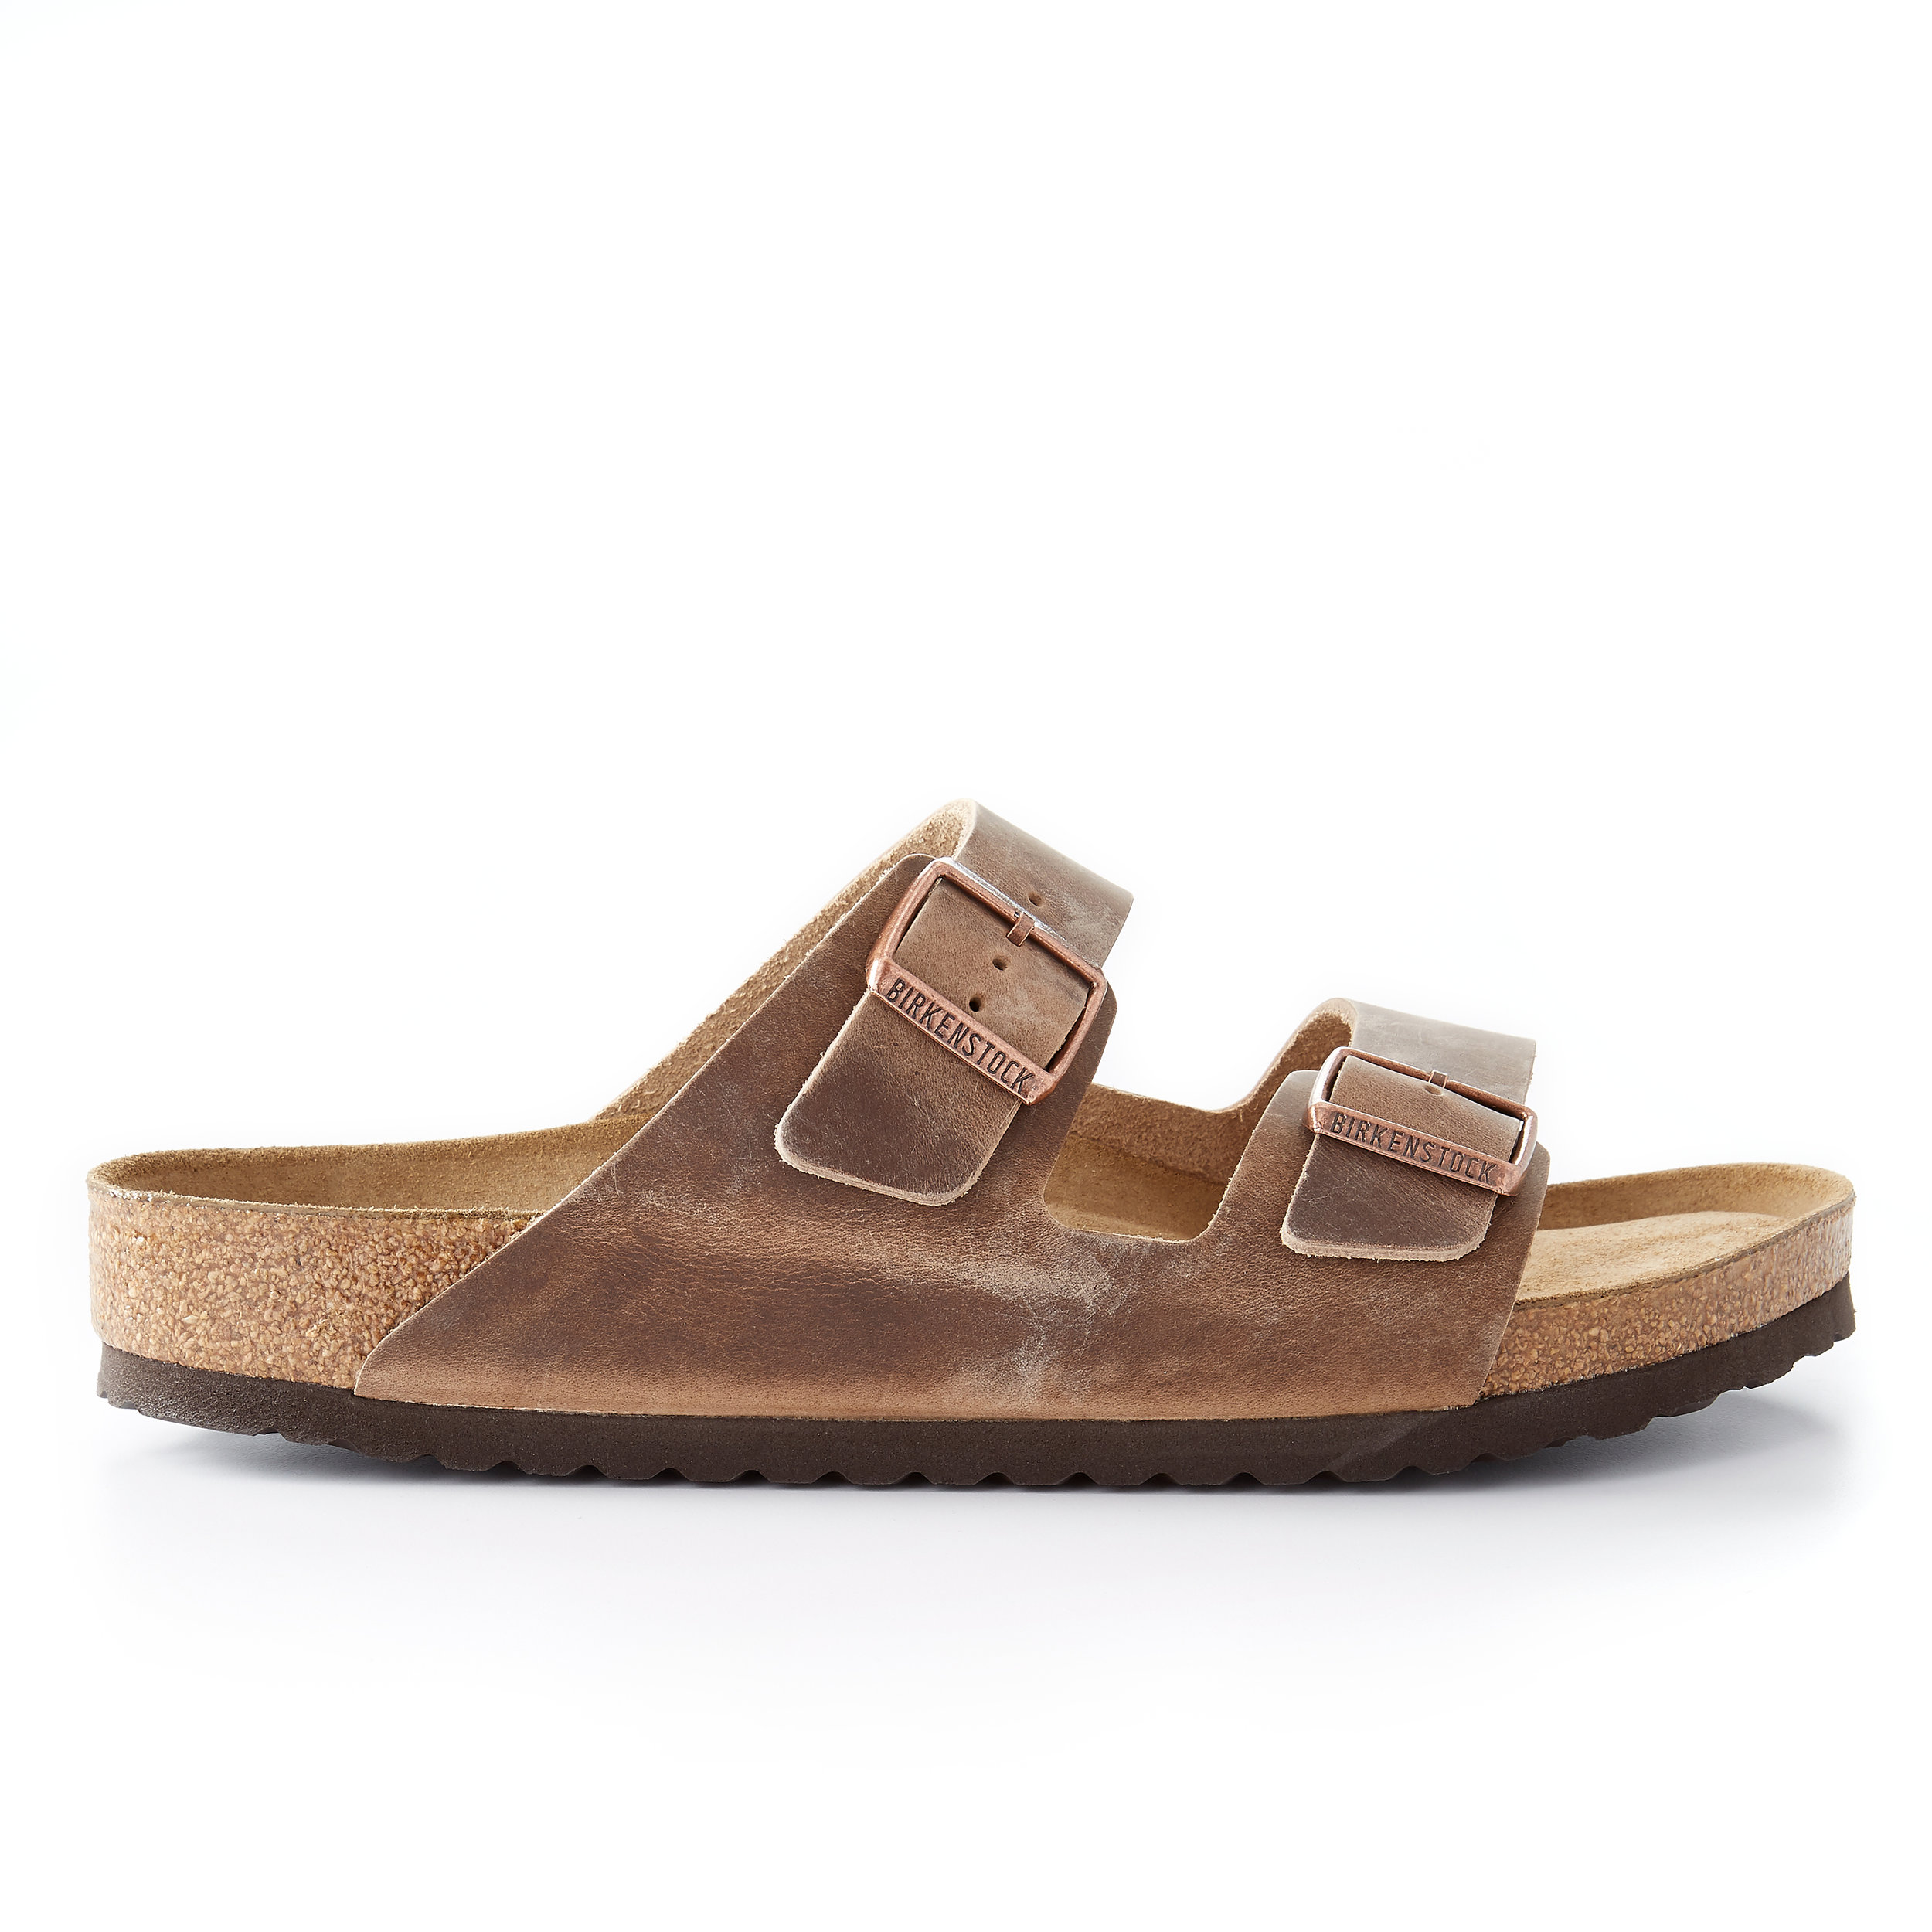 FLOPS - Birkenstocks are cool again, not that you give a shit. You never did because you knew how comfortable they are. Wear these free from superficial worries. ($125)